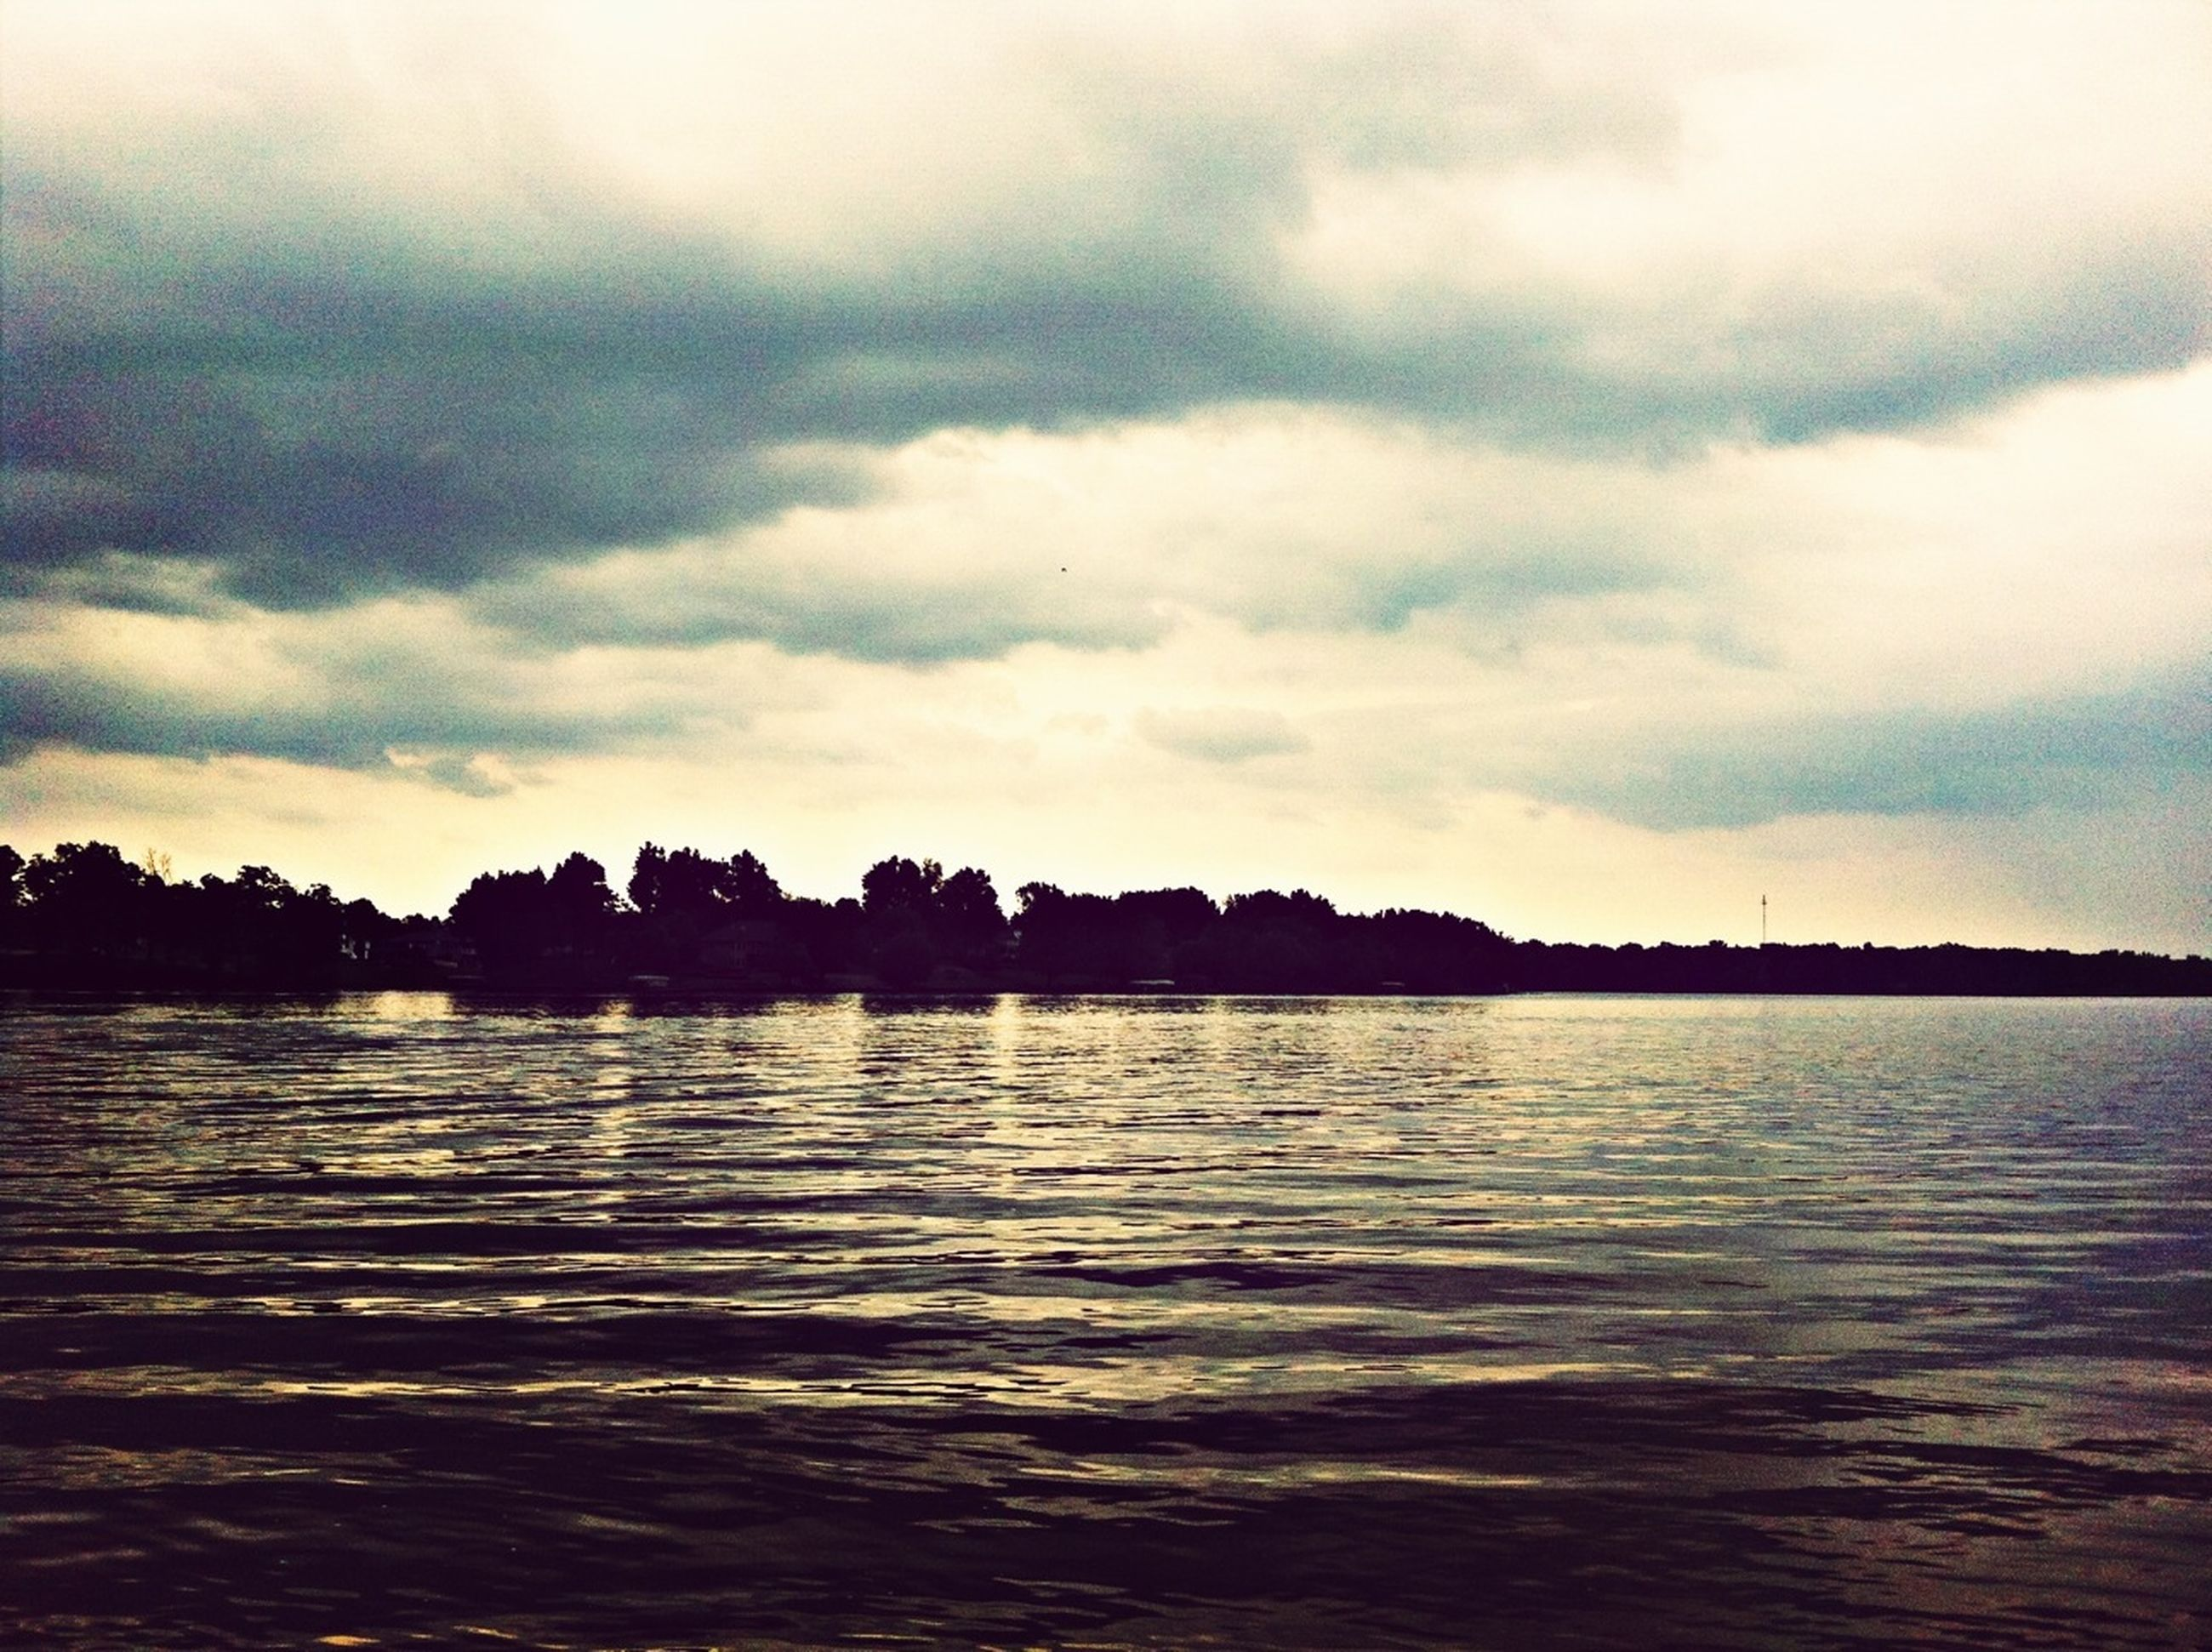 water, waterfront, sky, cloud - sky, silhouette, tranquil scene, tranquility, scenics, cloudy, cloud, beauty in nature, rippled, sea, nature, reflection, sunset, dusk, lake, idyllic, river